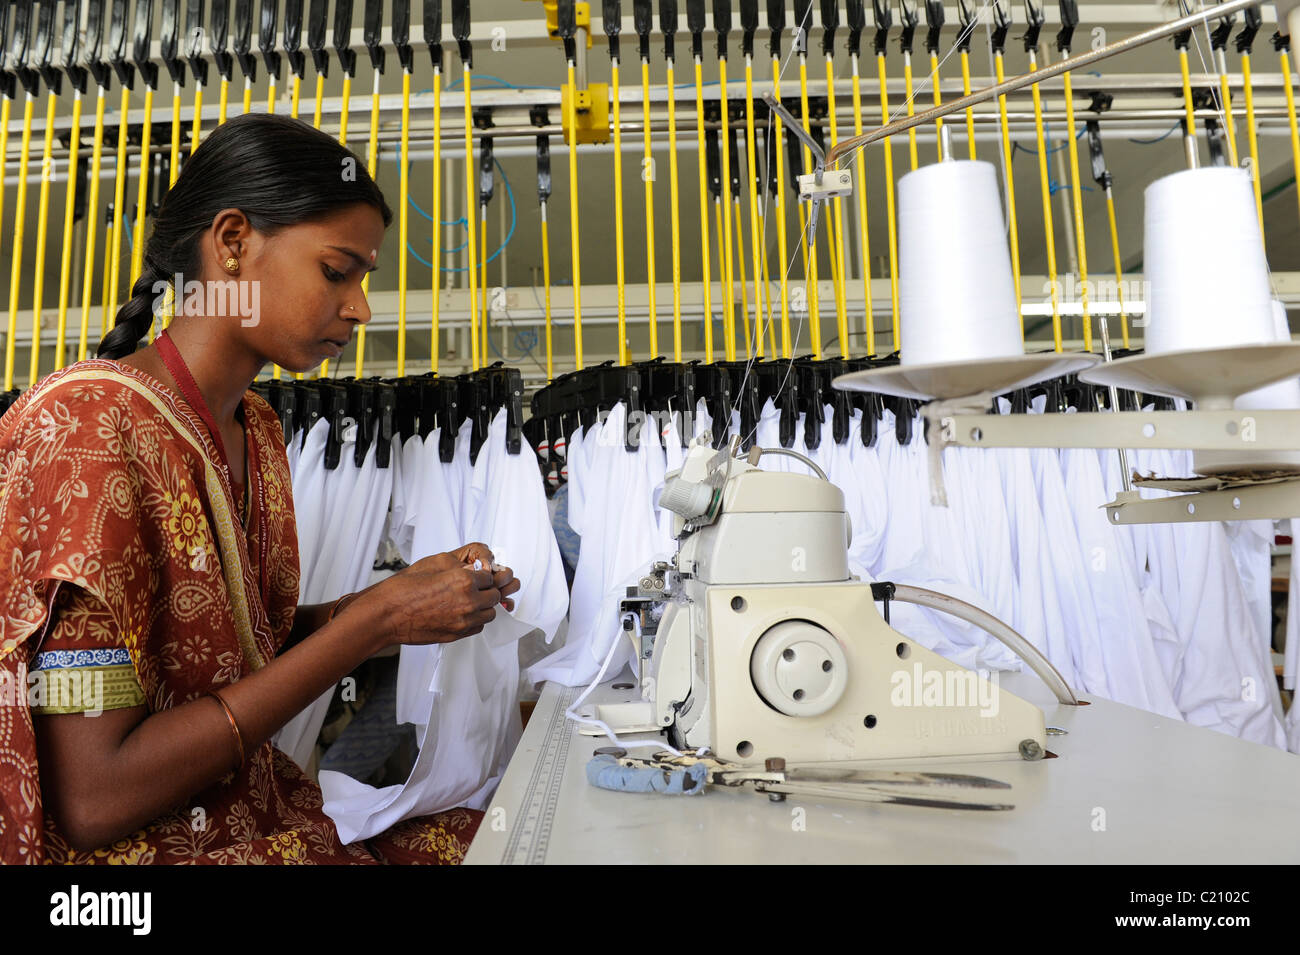 India, Tamil Nadu, Tirupur , women work in fair trade textile factory, production of garments and apparels for export - Stock Image